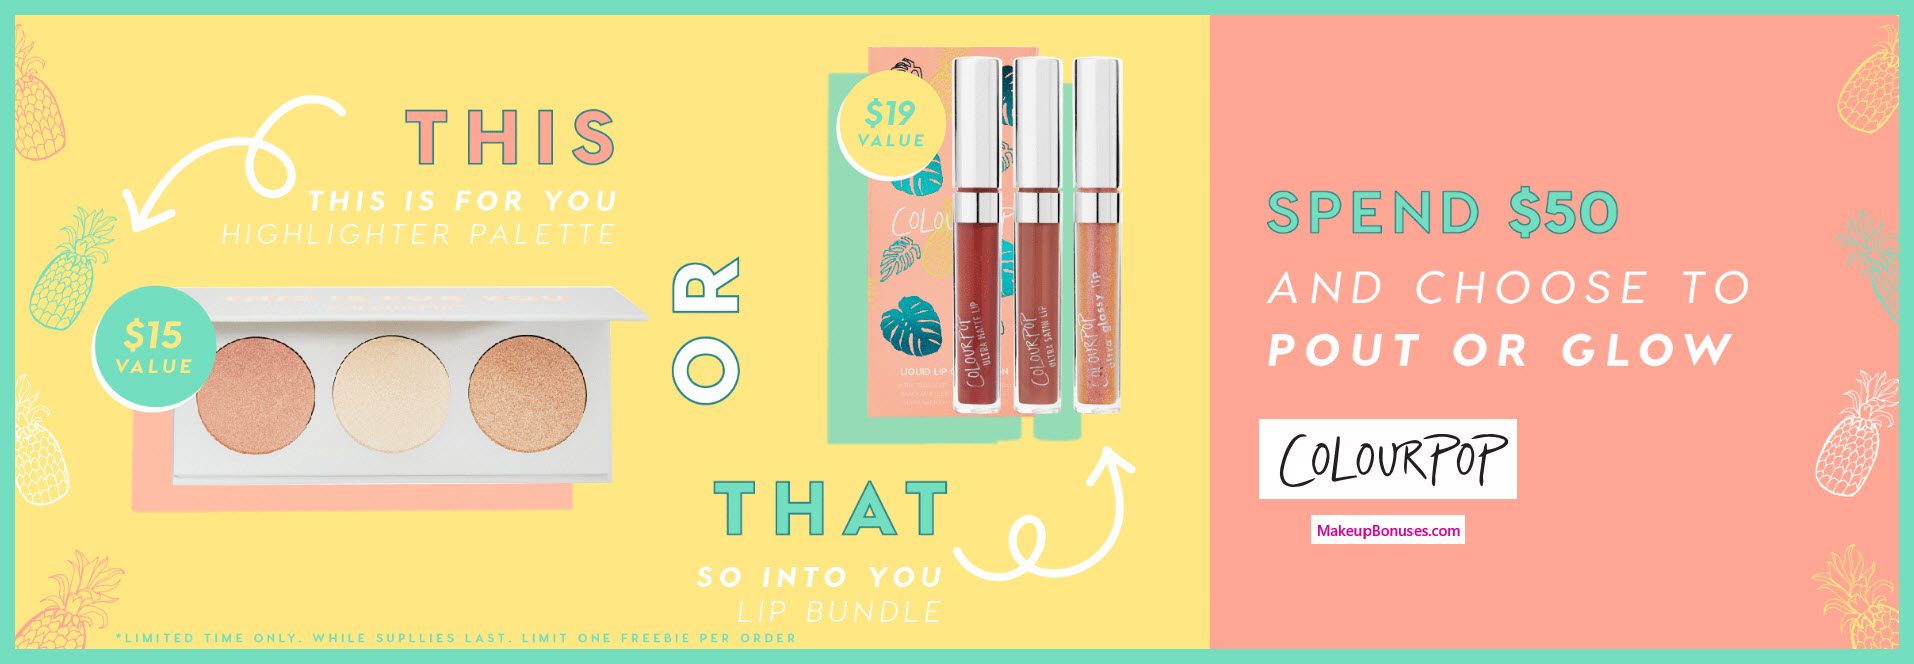 Receive your choice of 3-pc gift with $50 ColourPop purchase